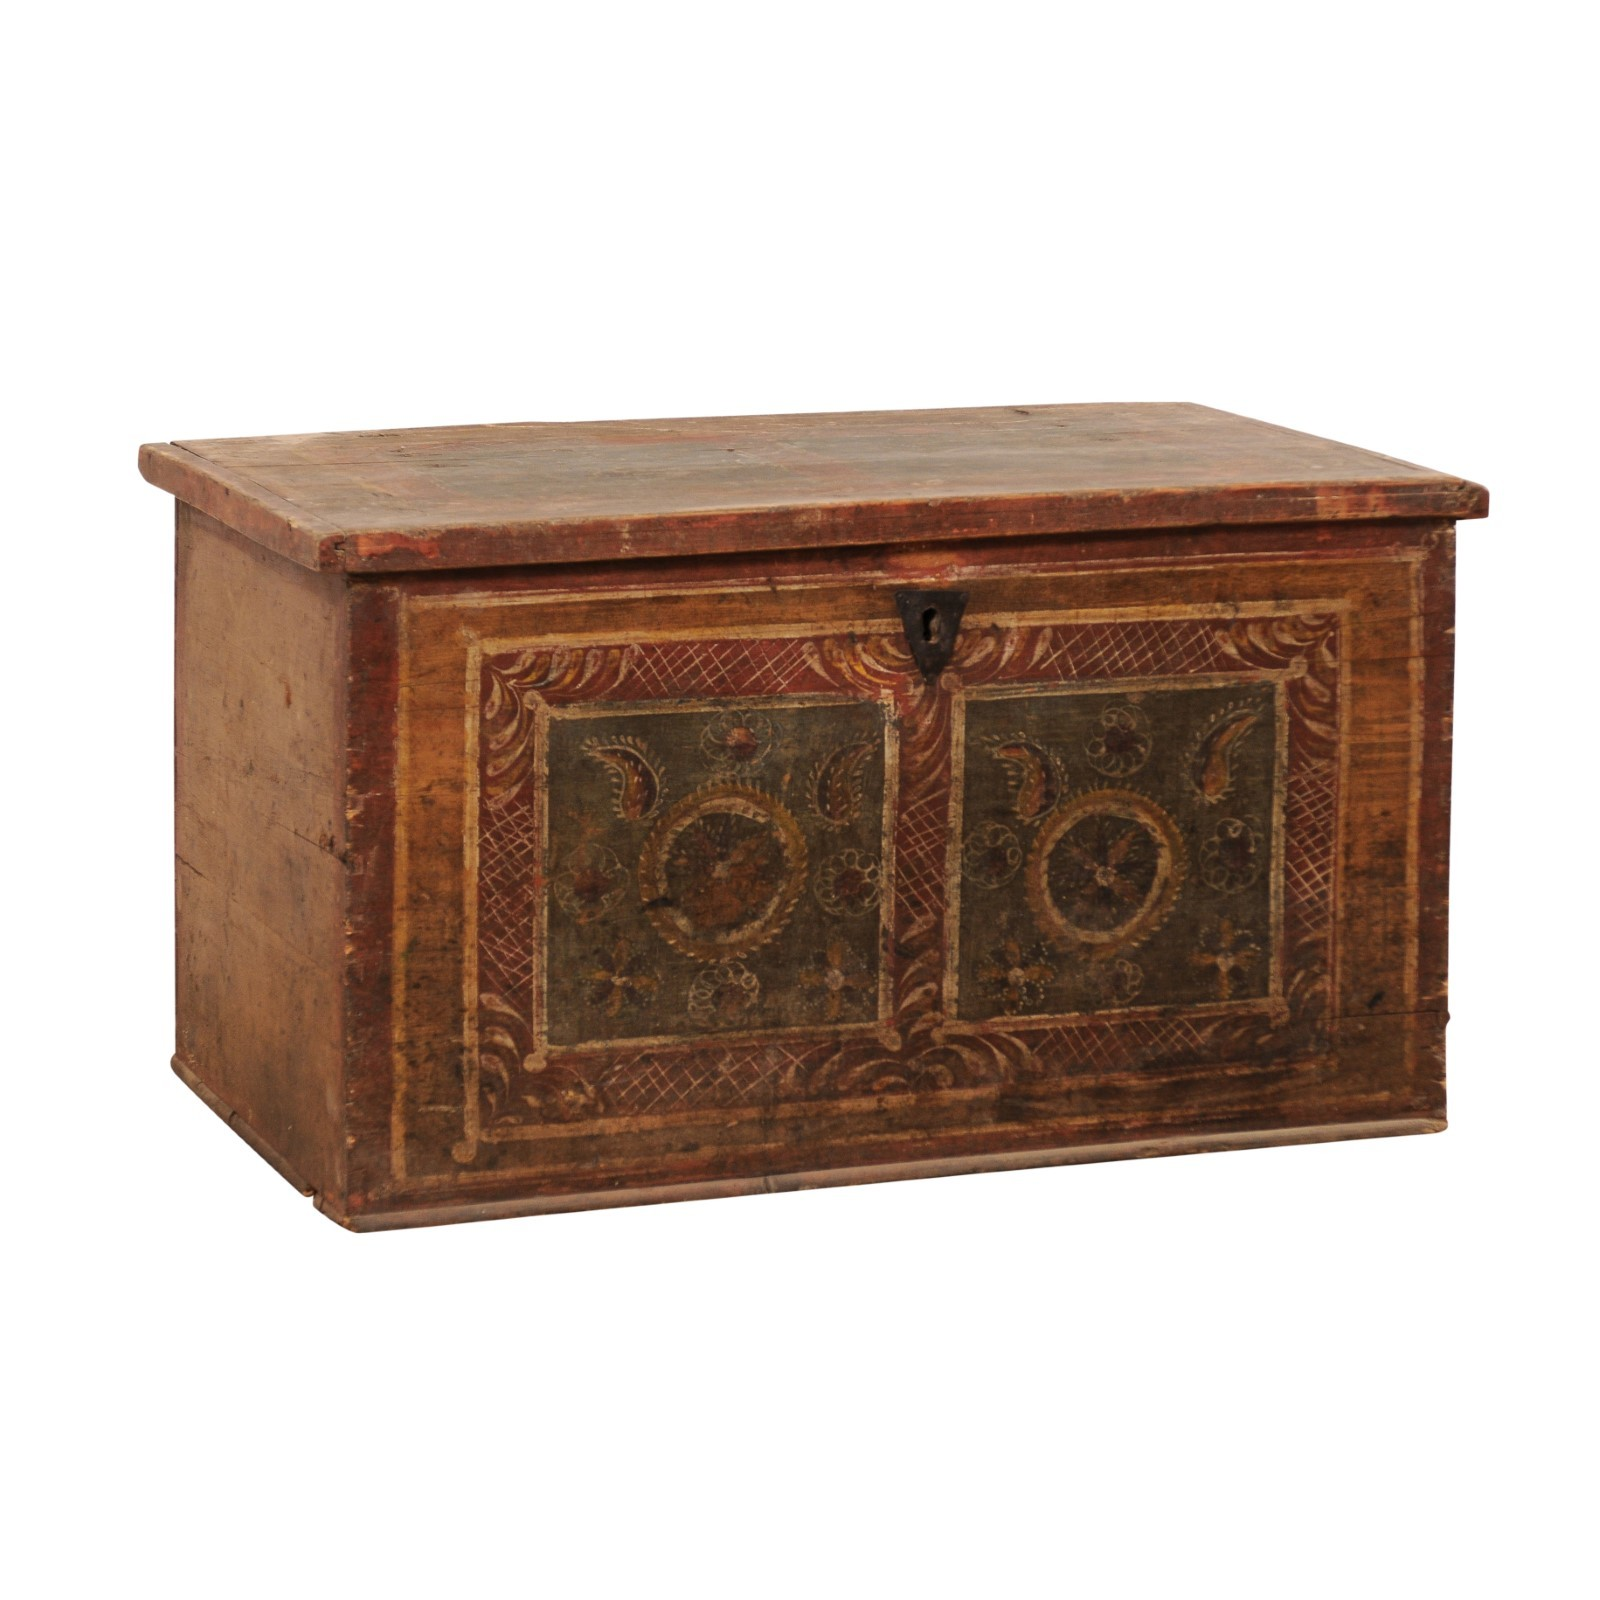 19th C. Coffer w/Original Hand-Painting